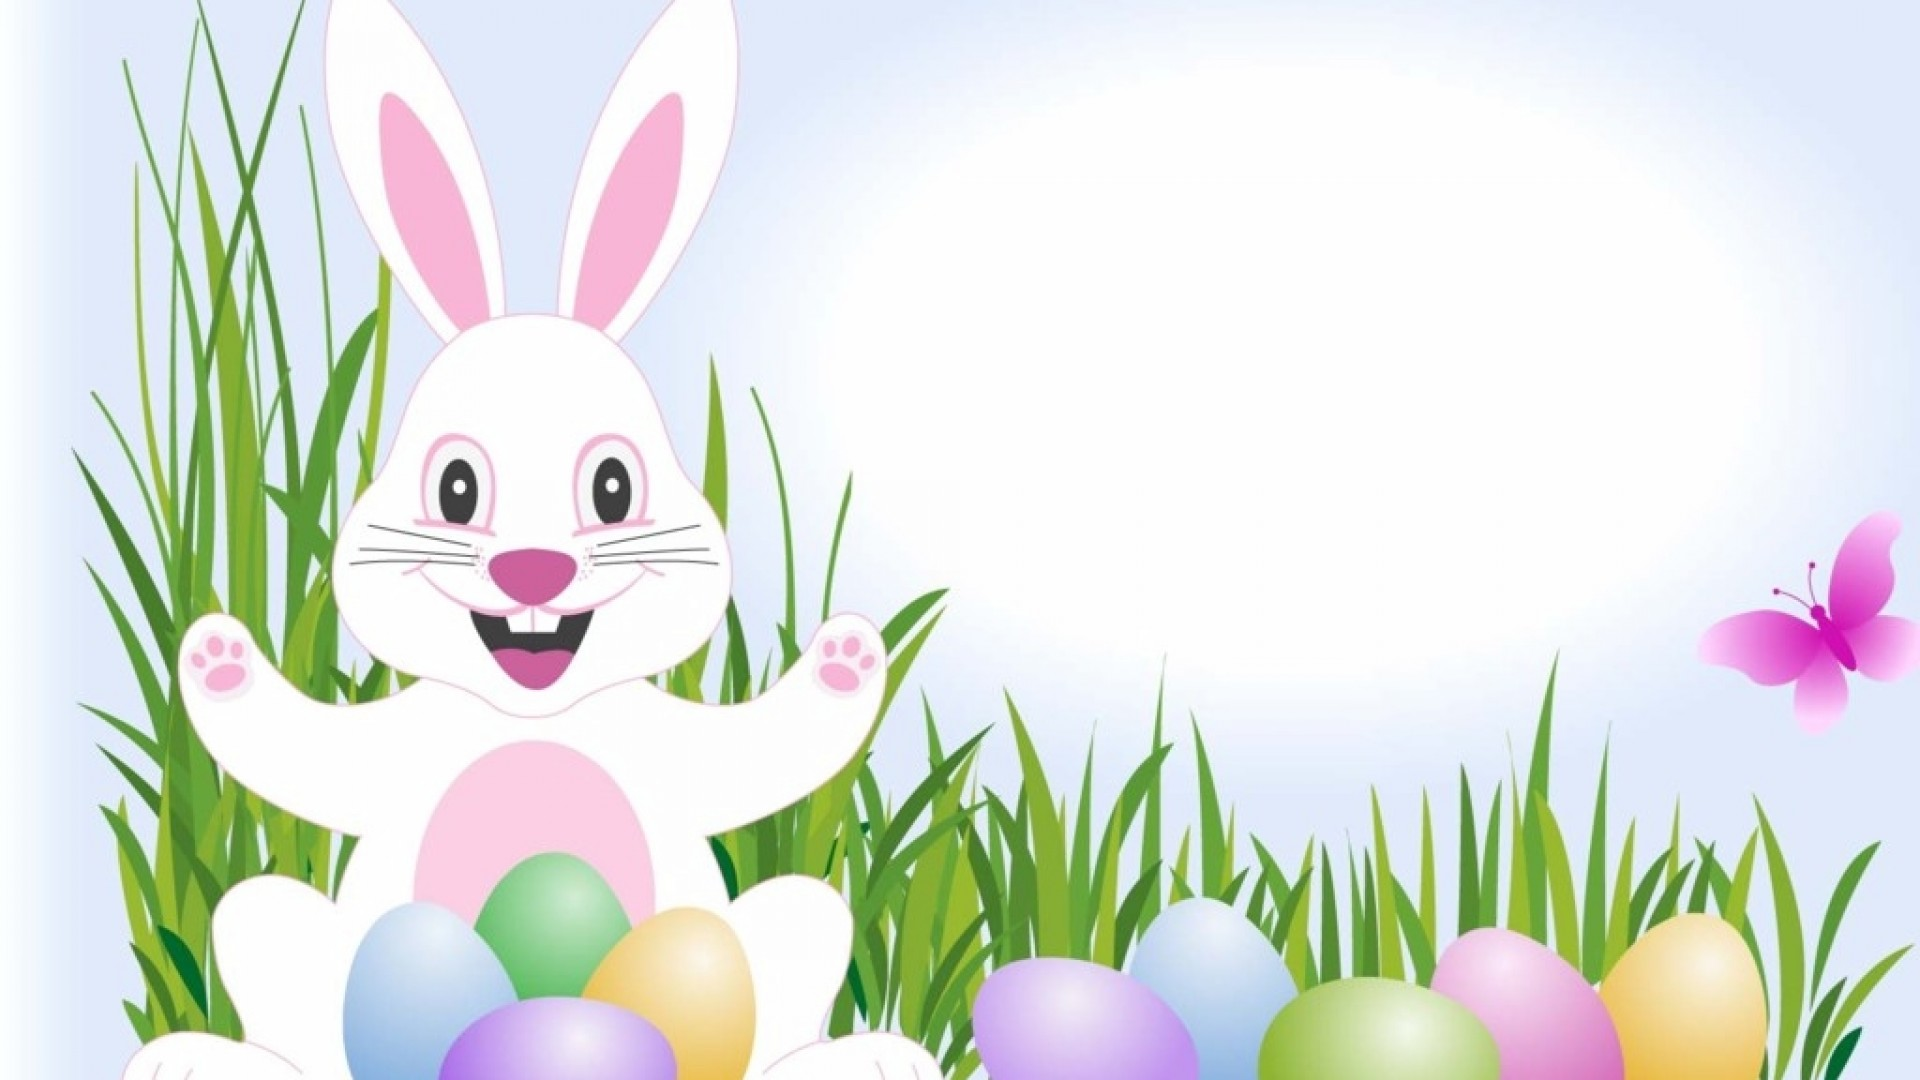 easter holiday - wallpaper, high definition, high quality, widescreen